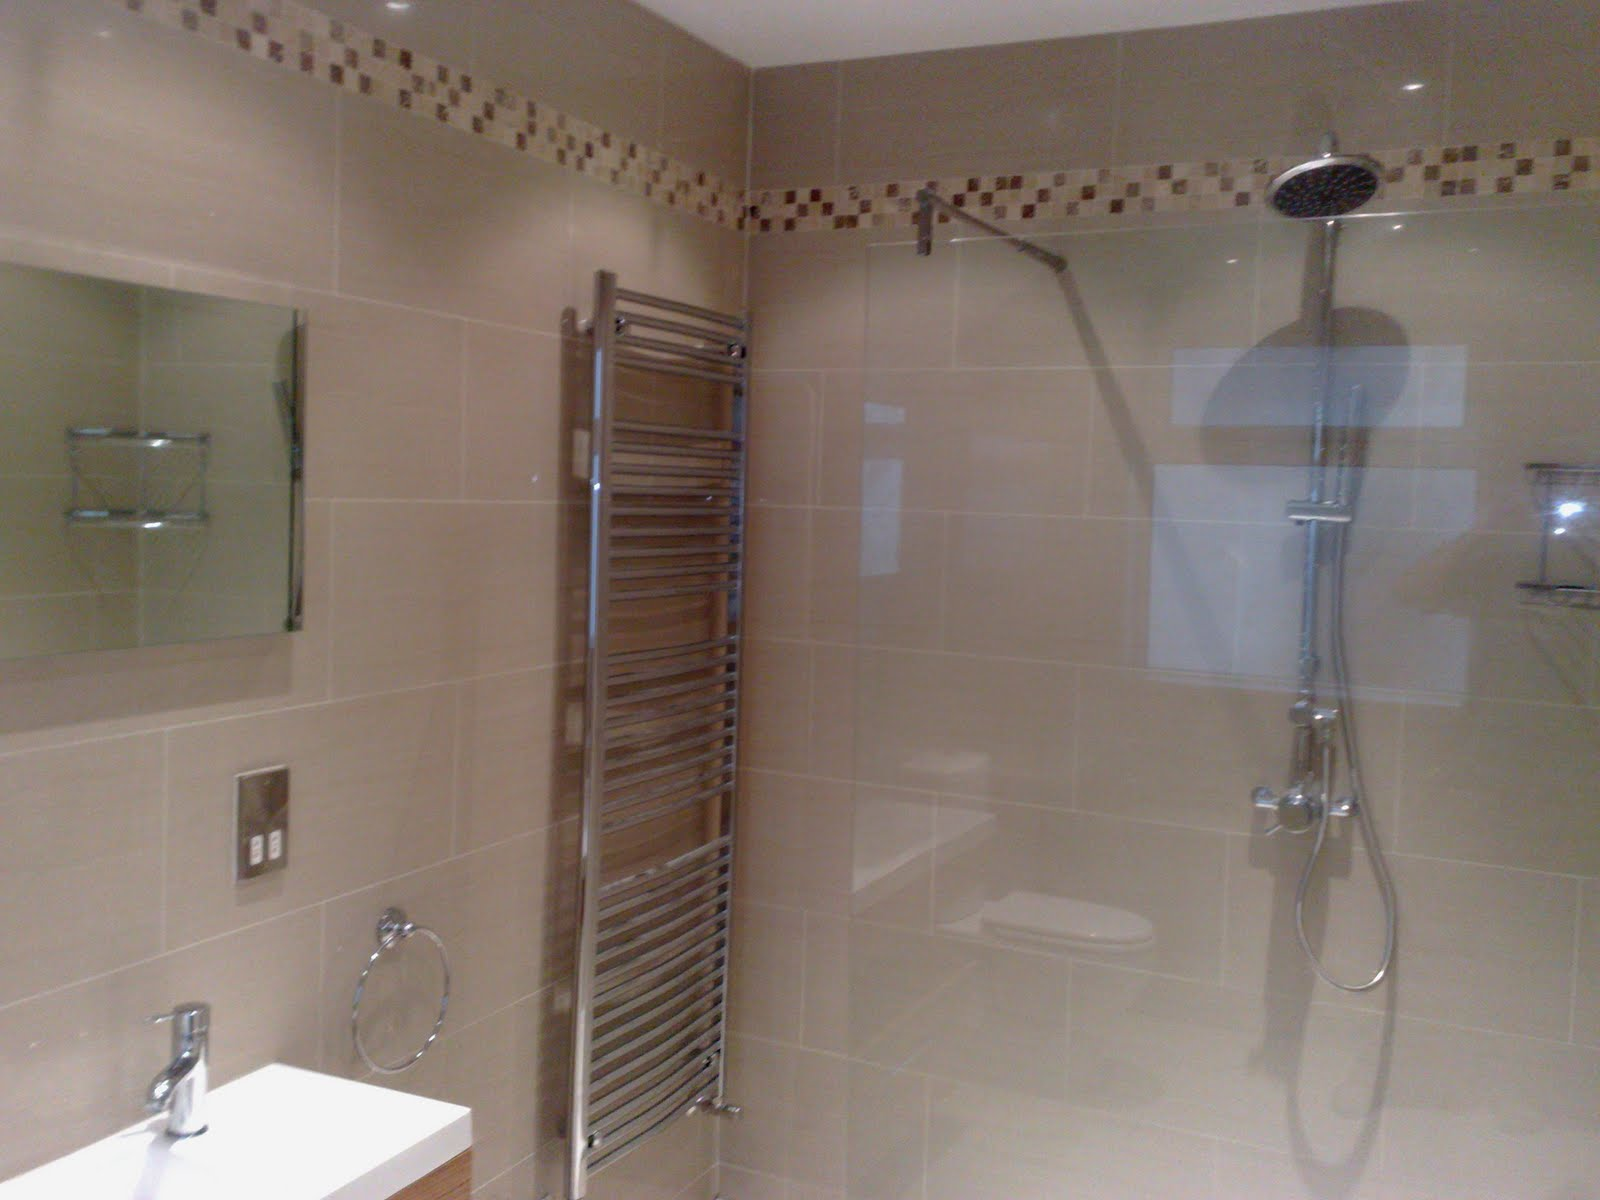 Tile bathroom shower layout design lower north shore modern bathroom sydney by monica kovacic